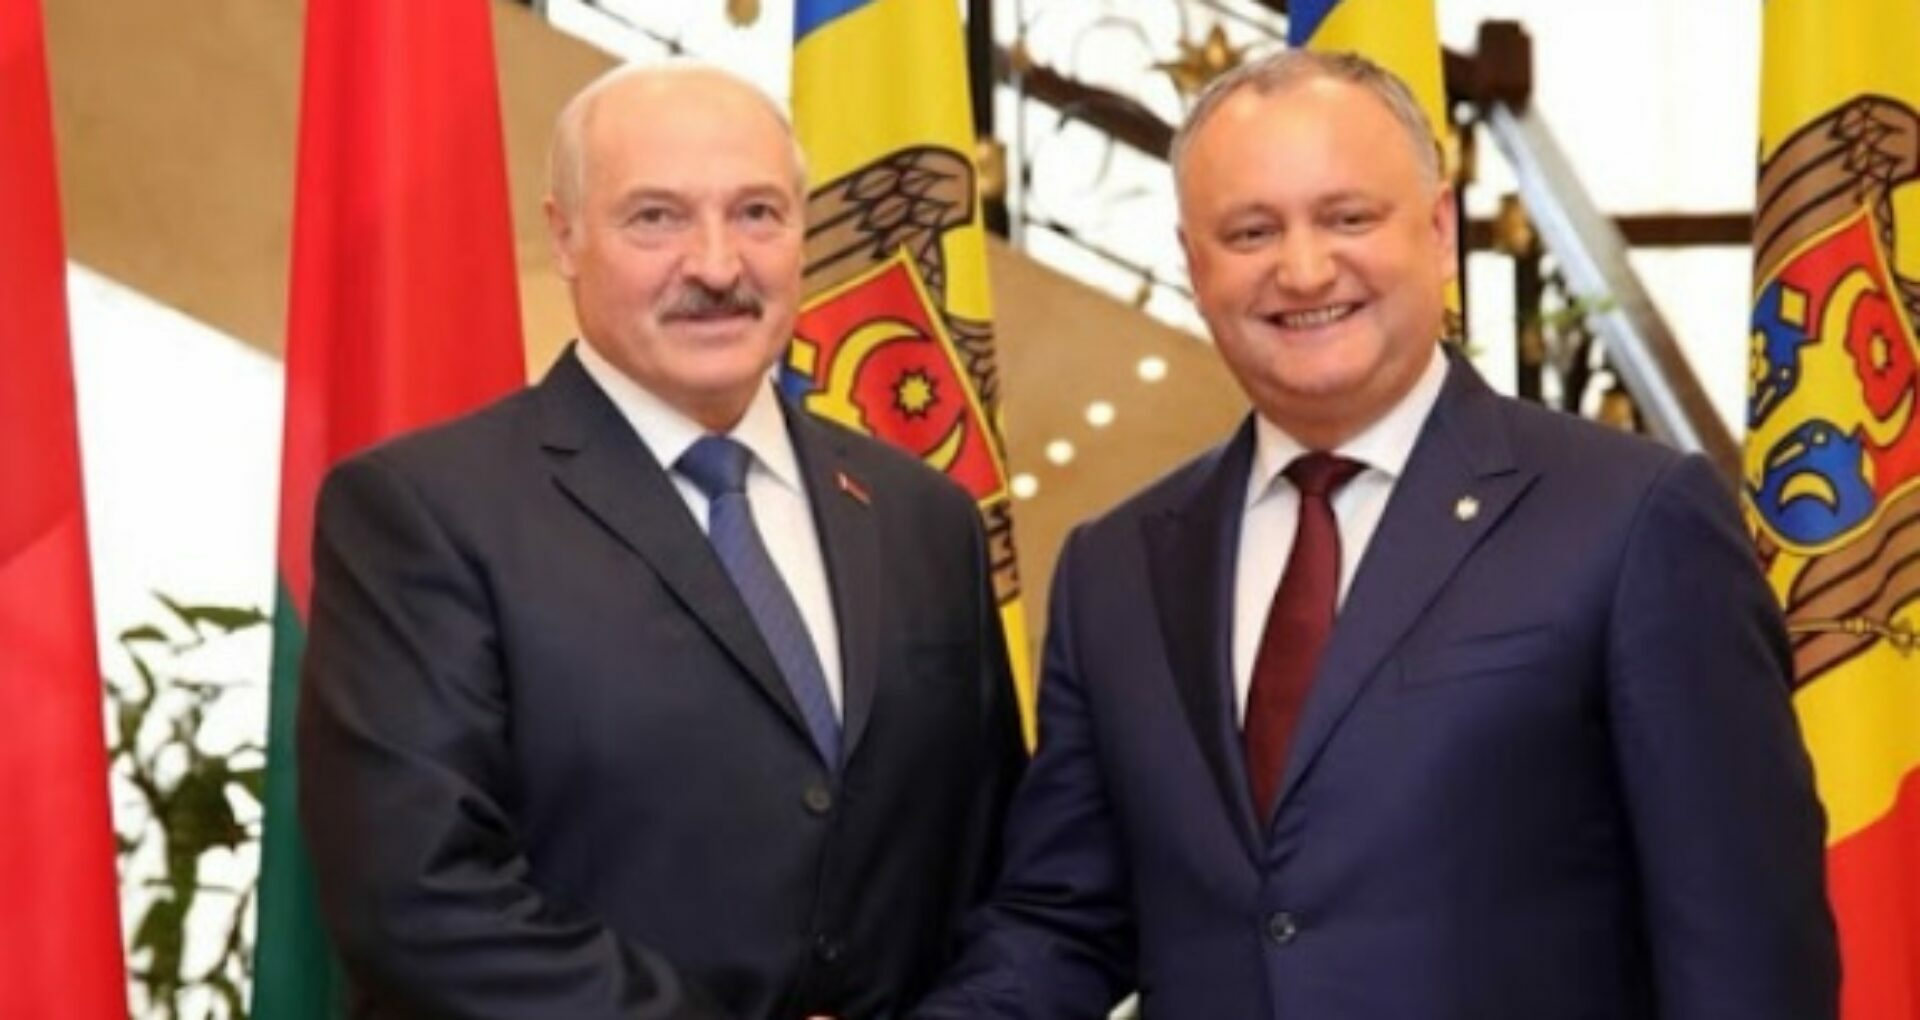 President Igor Dodon Congratulated His Belarusian Counterpart Alexandr Lukashenko on His Victory in the Presidential Elections